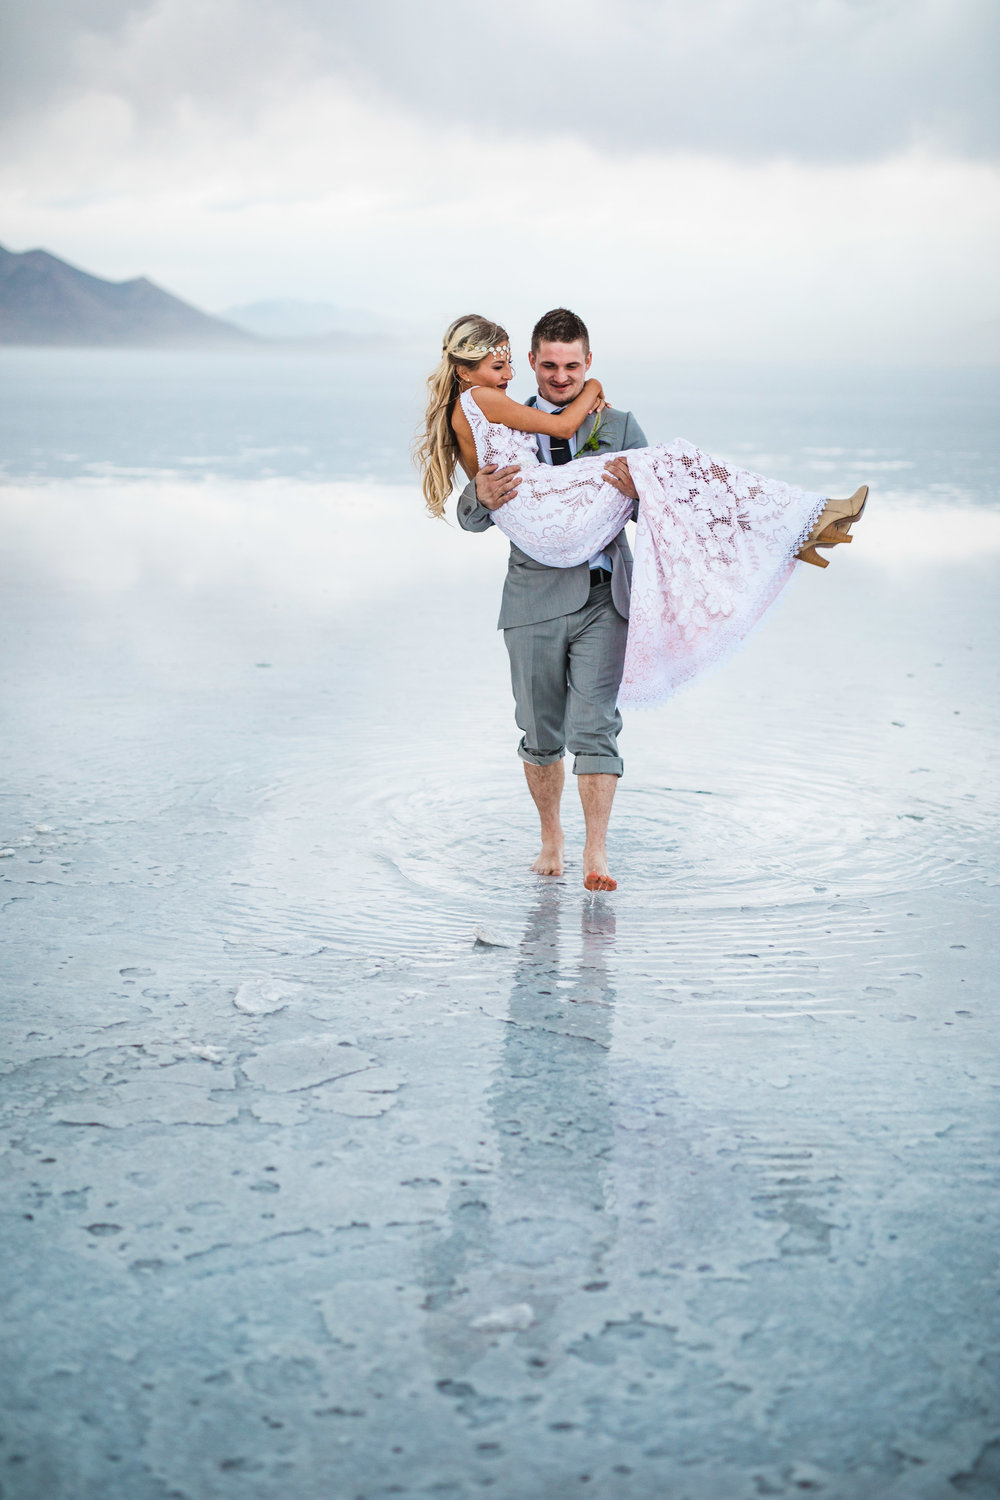 Epic destination wedding photography Bonneville Salt Flats